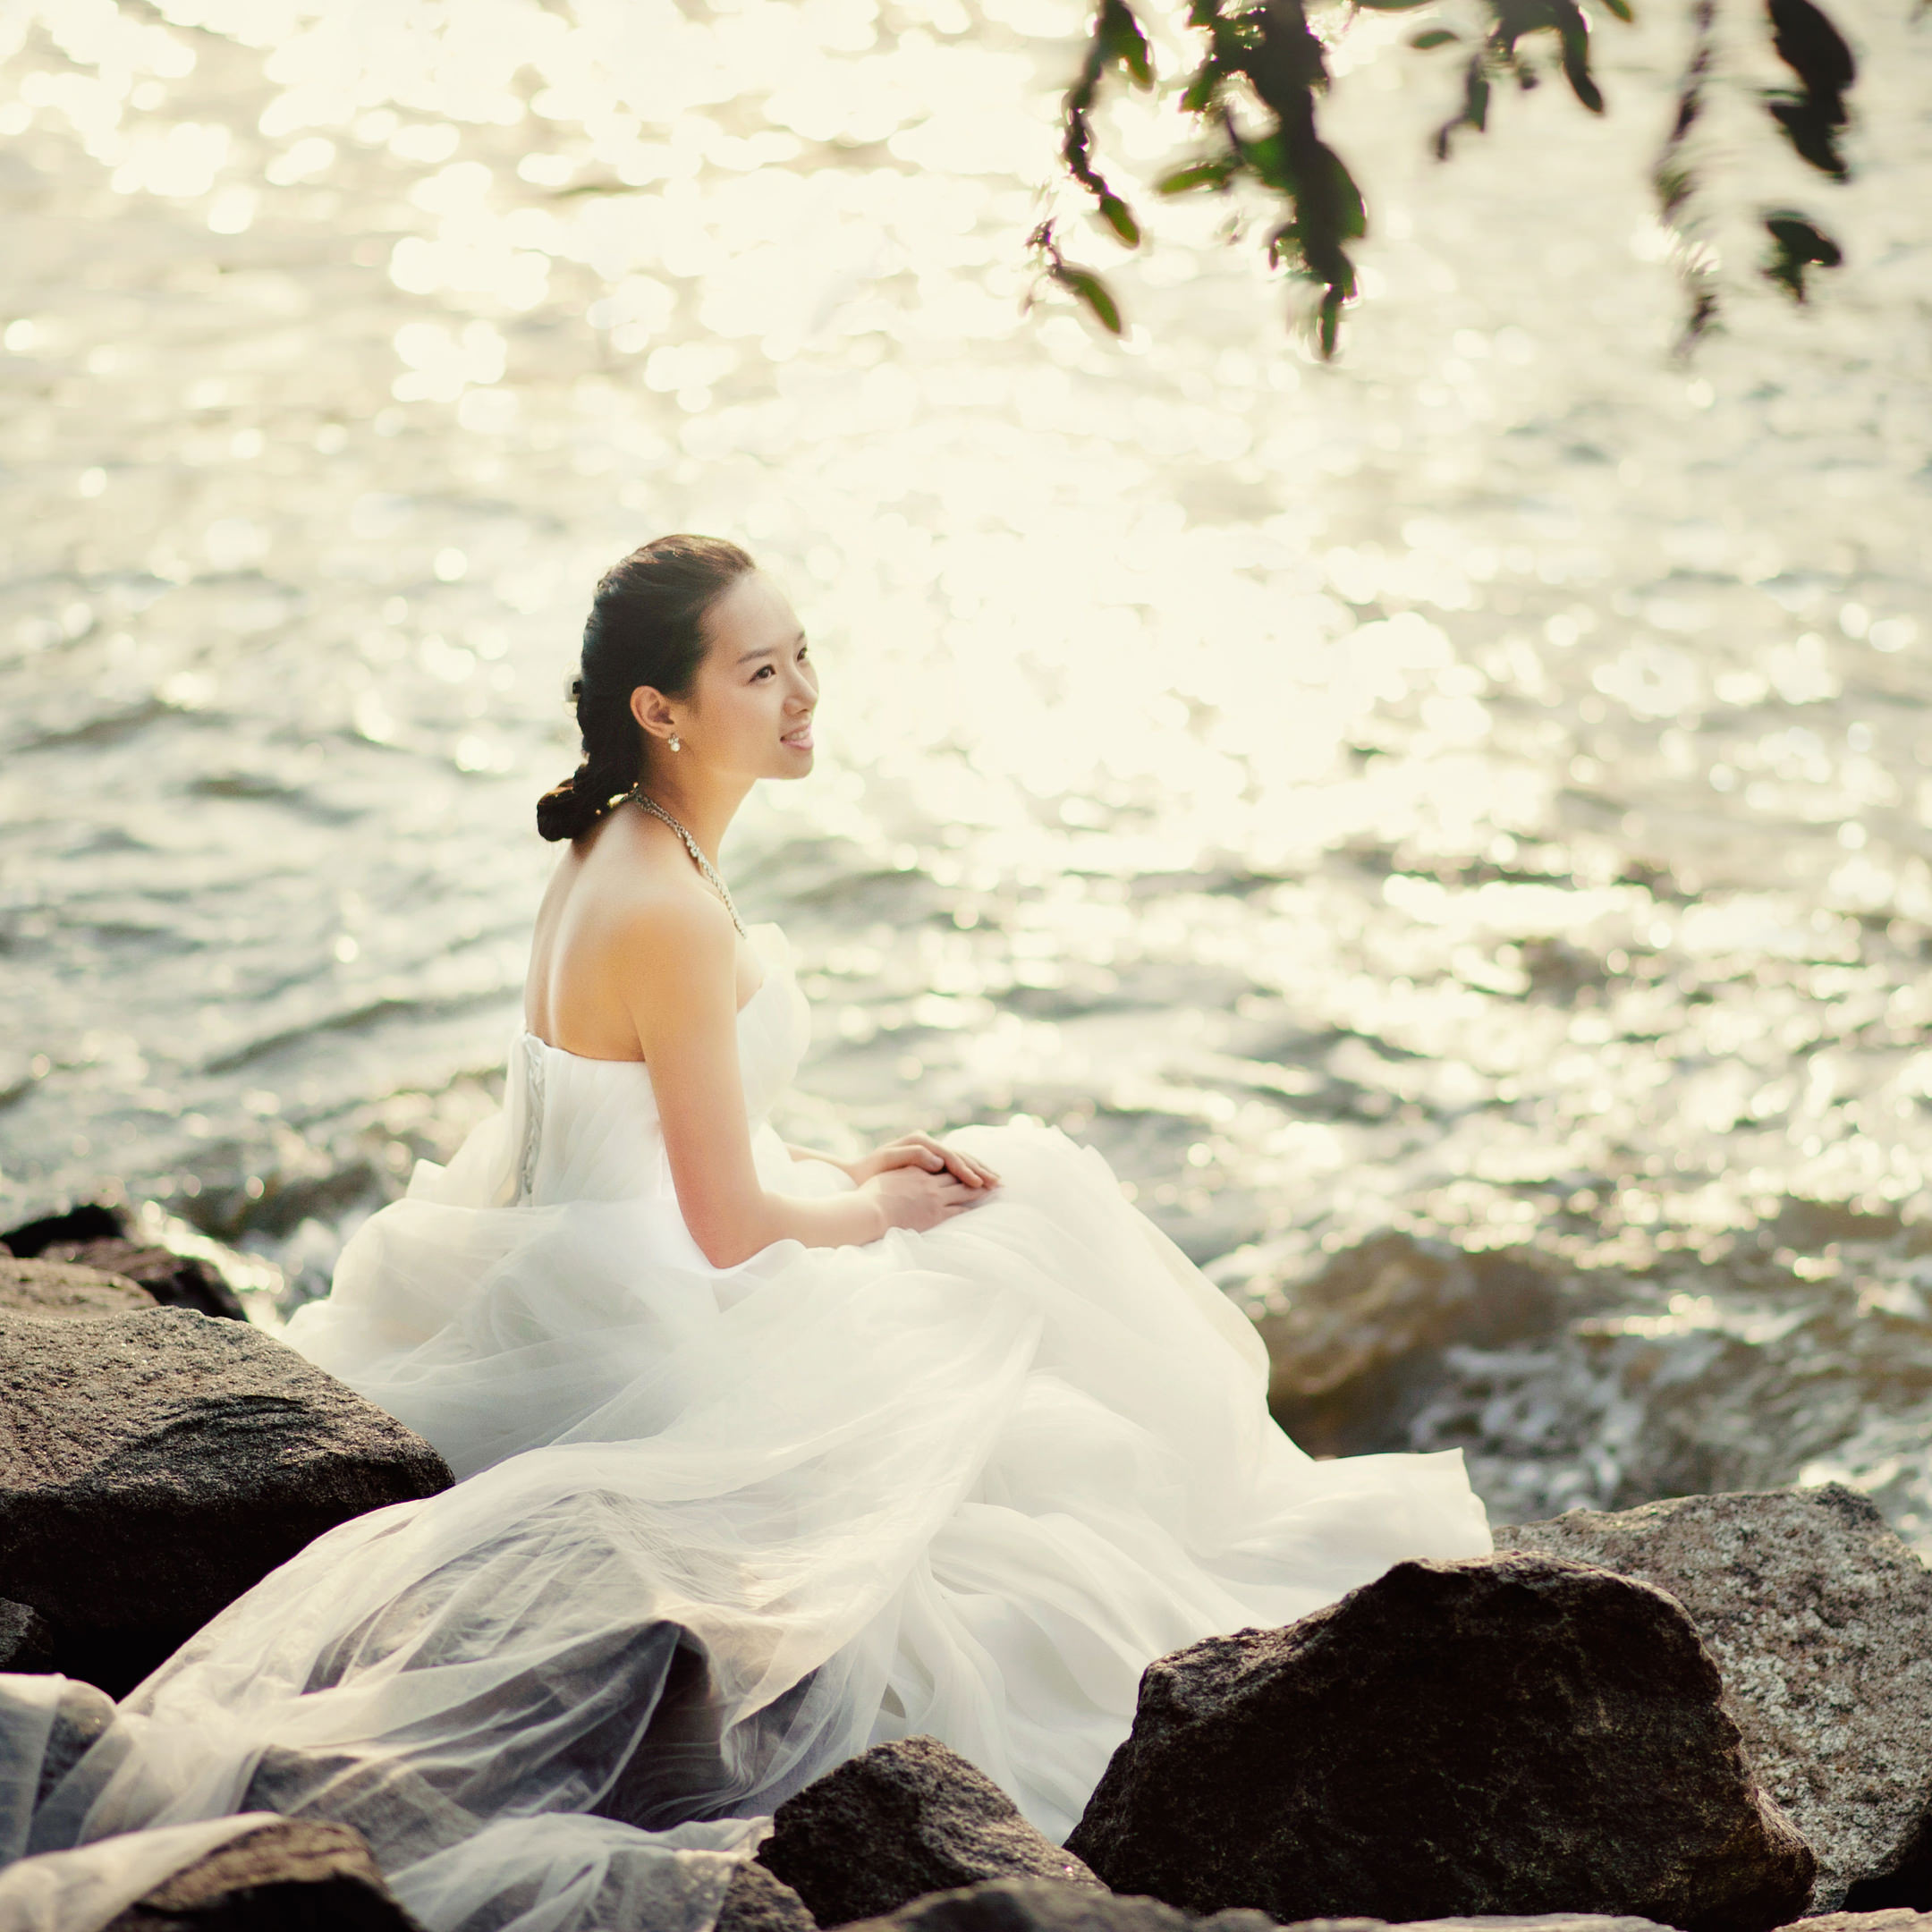 Chris_Hui_婚禮_婚紗照_pre_wedding_photography_best_051_.jpg